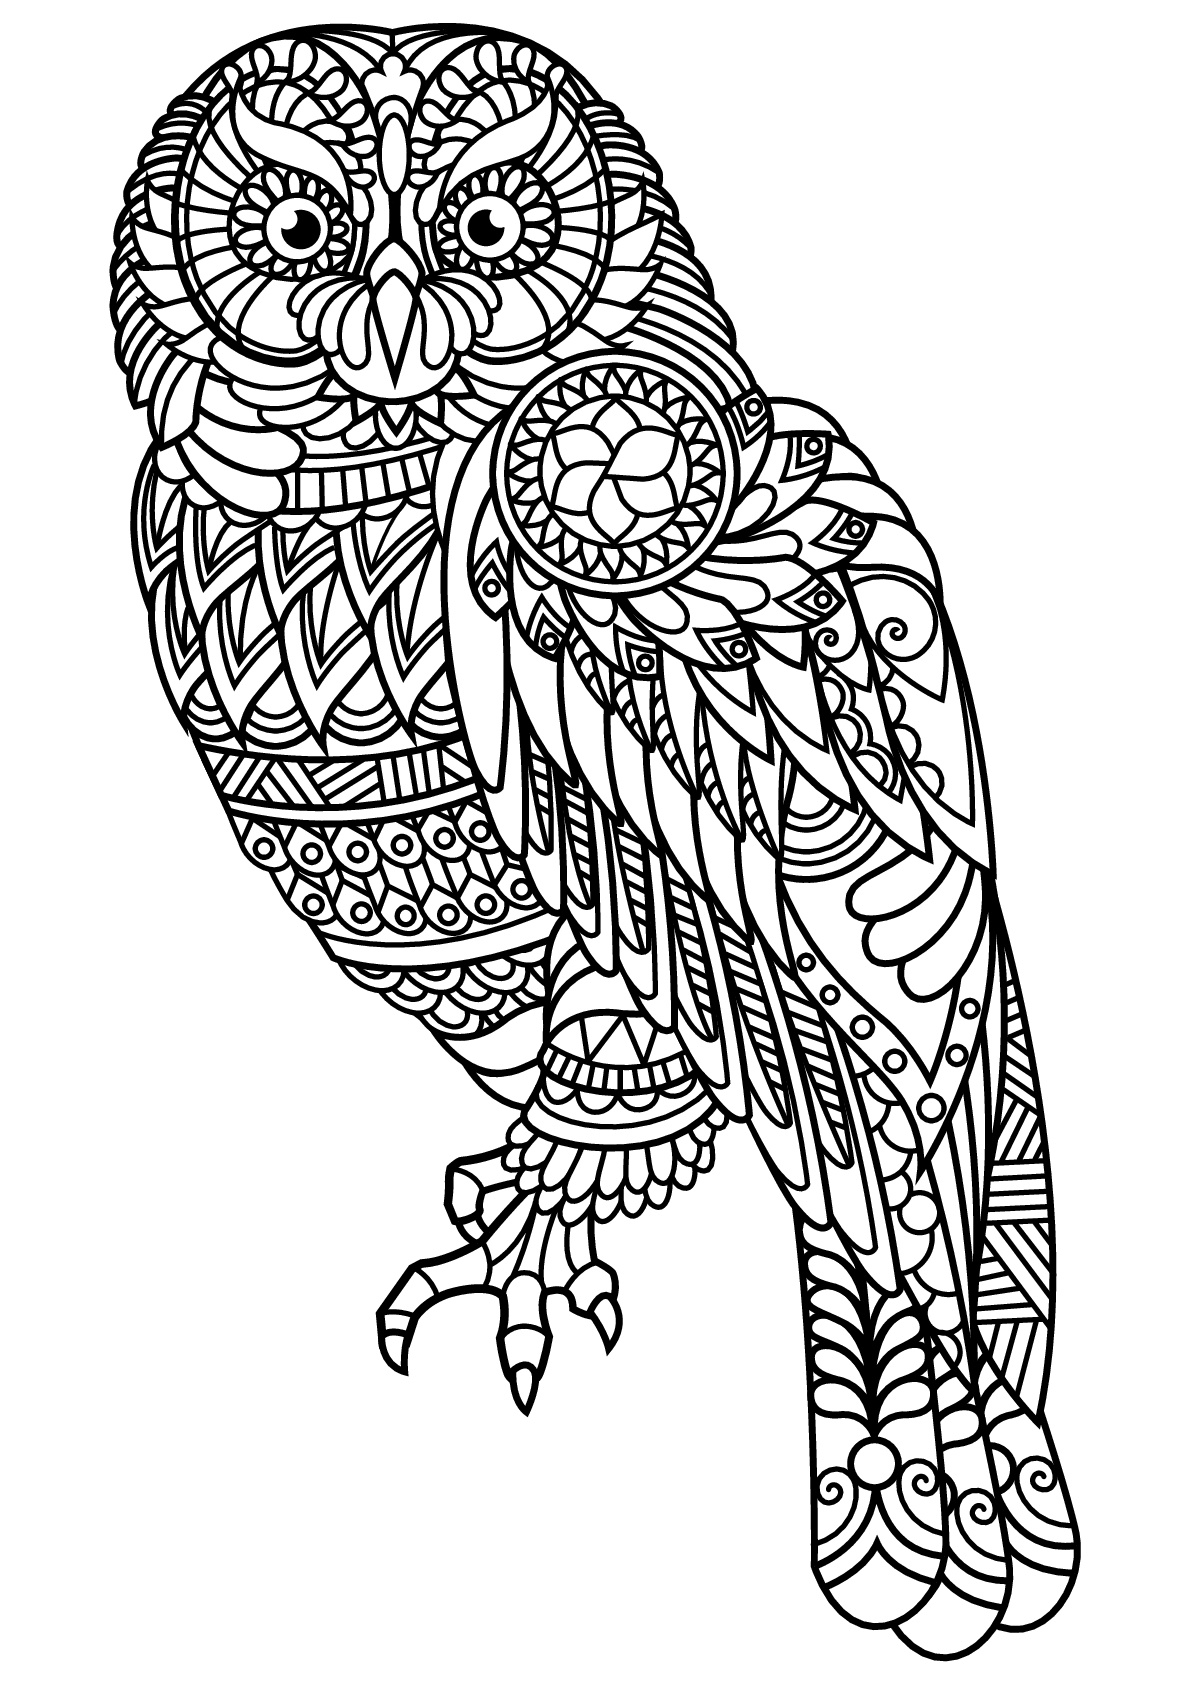 free printable coloring pages animals crayola animal coloring pages at getdrawings free download coloring free animals printable pages